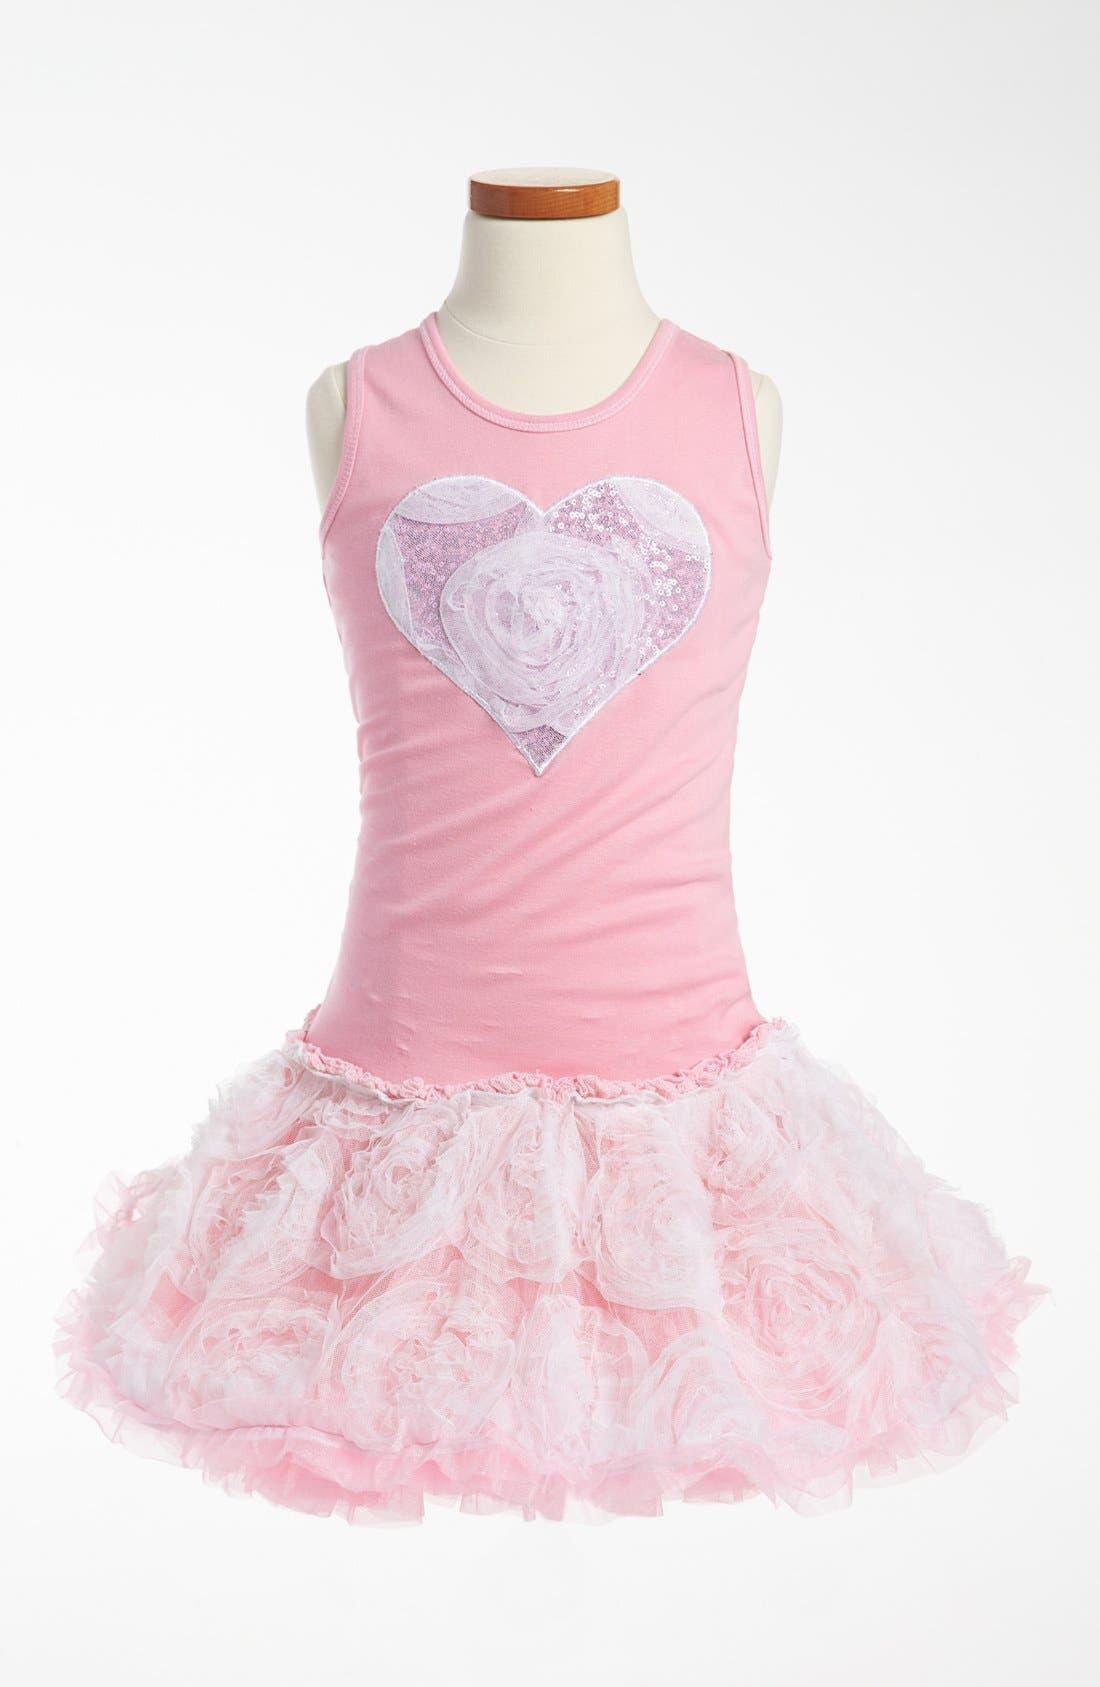 Main Image - Ooh! La, La! Couture Tulle Flower Dress (Little Girls & Big Girls)